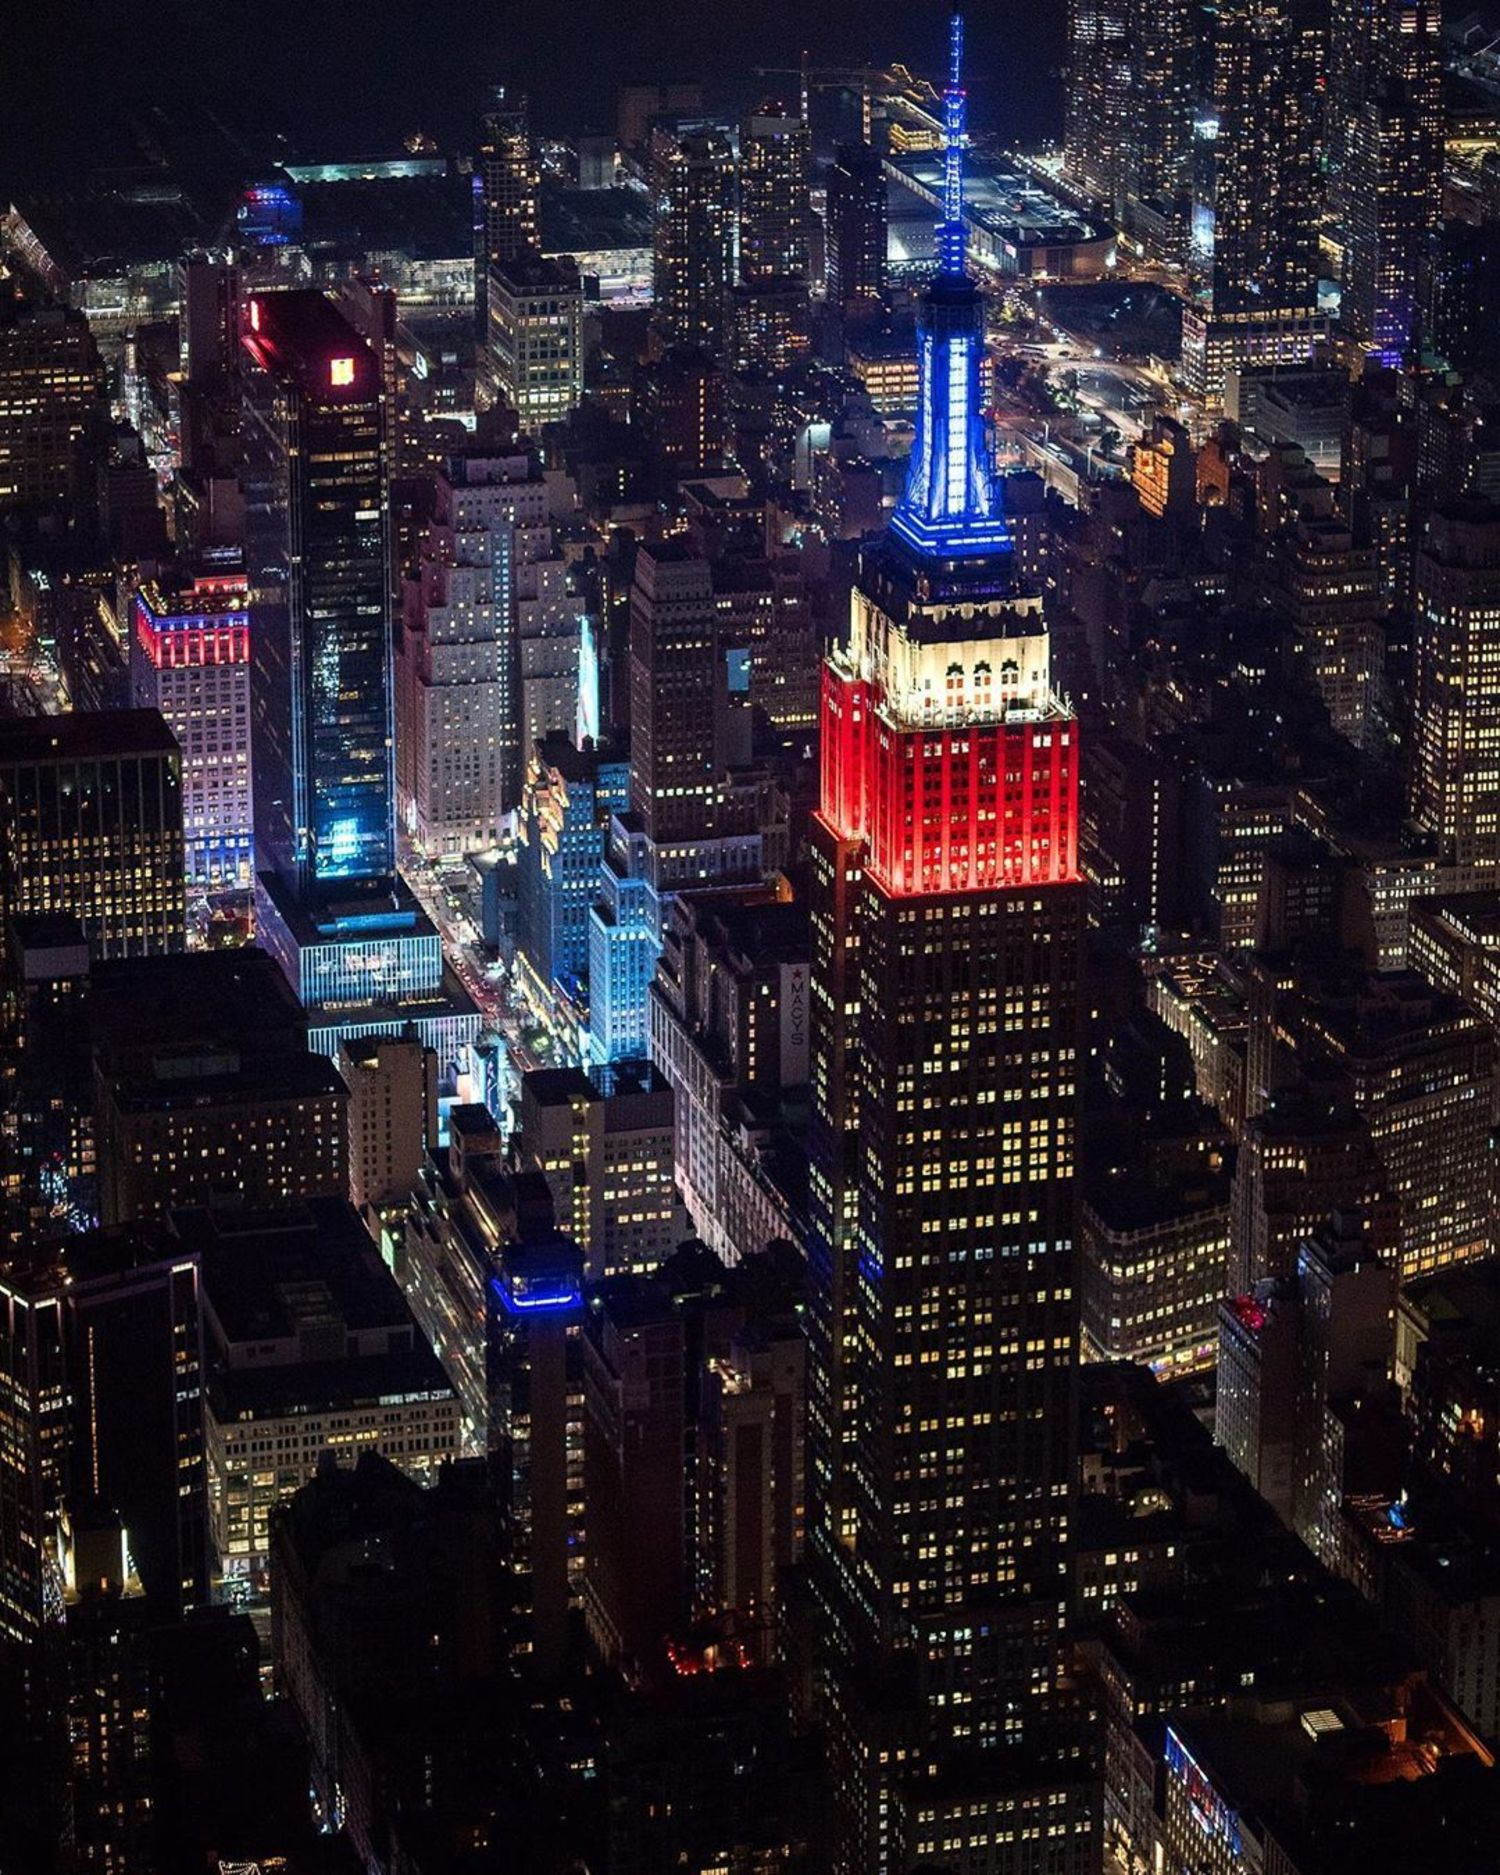 Empire State Building and 34th Street, Midtown, Manhattan